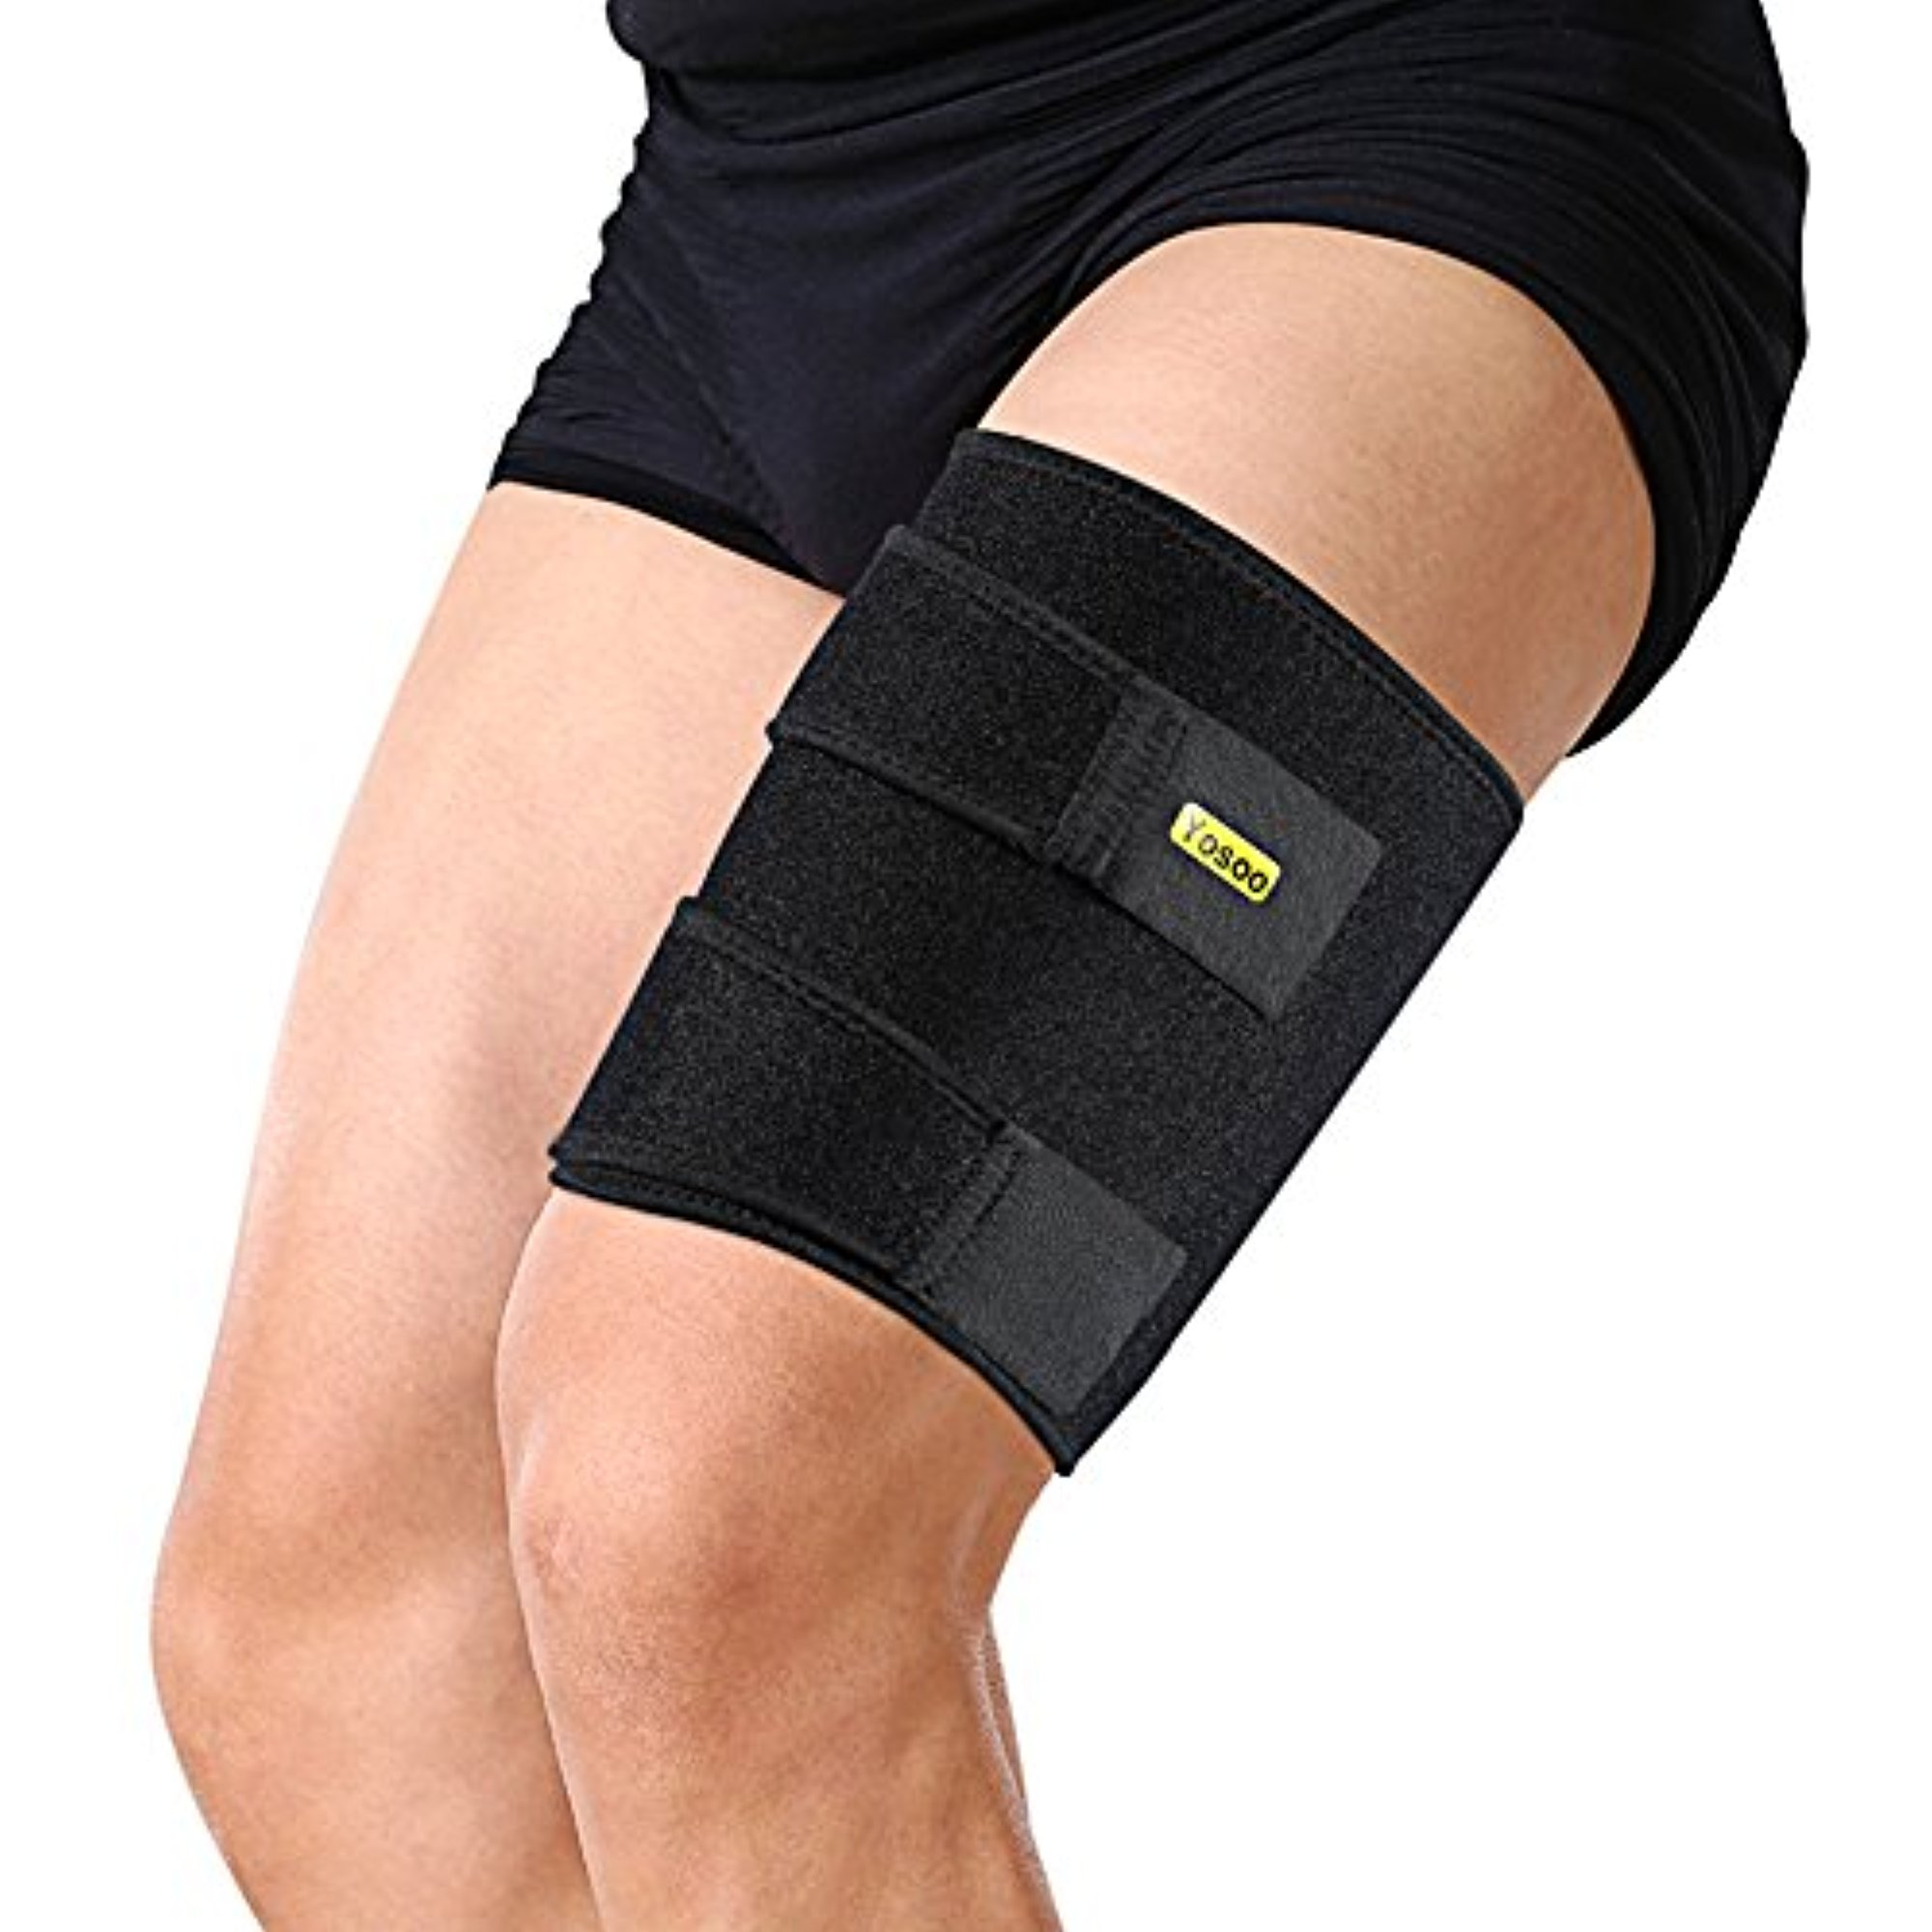 Yosoo Thigh Wrap - Adjustable Neoprene Hamstring Brace for Pulled Hamstring Strain Injury Tendonitis Rehab and Recovery, Fits Men and Women, Black